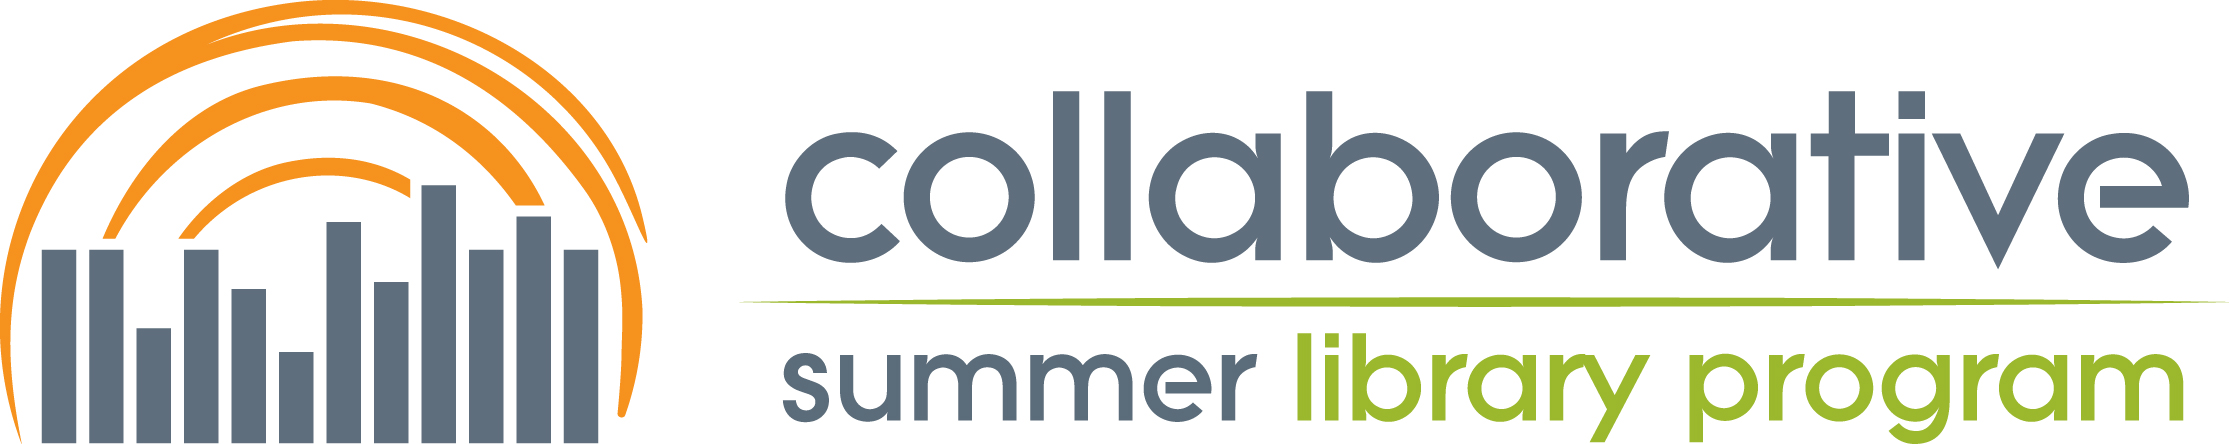 Collaborative Summer Library Program